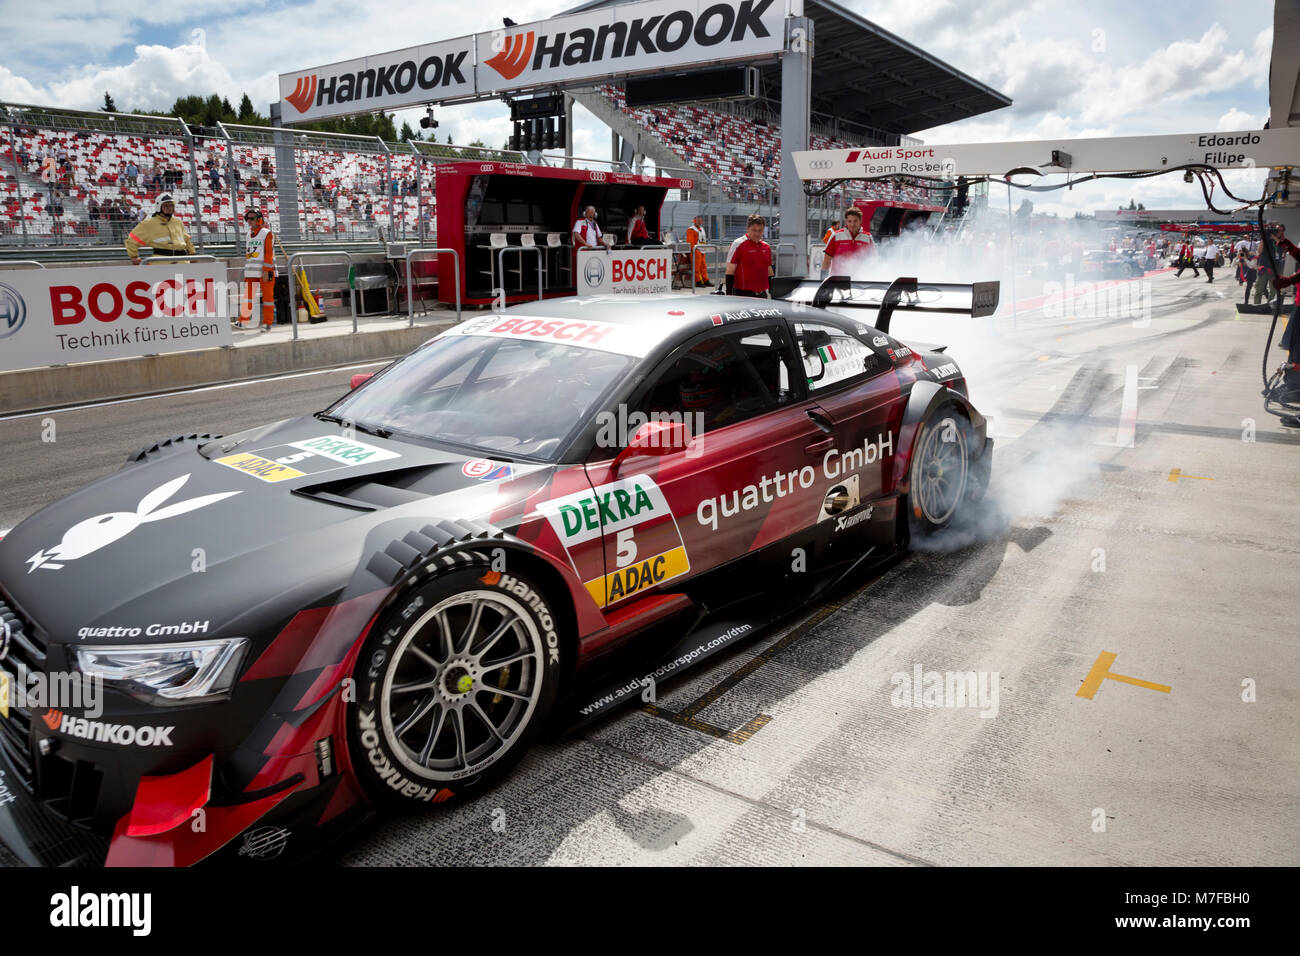 The Audi Rs Team Dtm Car Of Audi Sport Team Rosberg Participates In Stock Photo Alamy